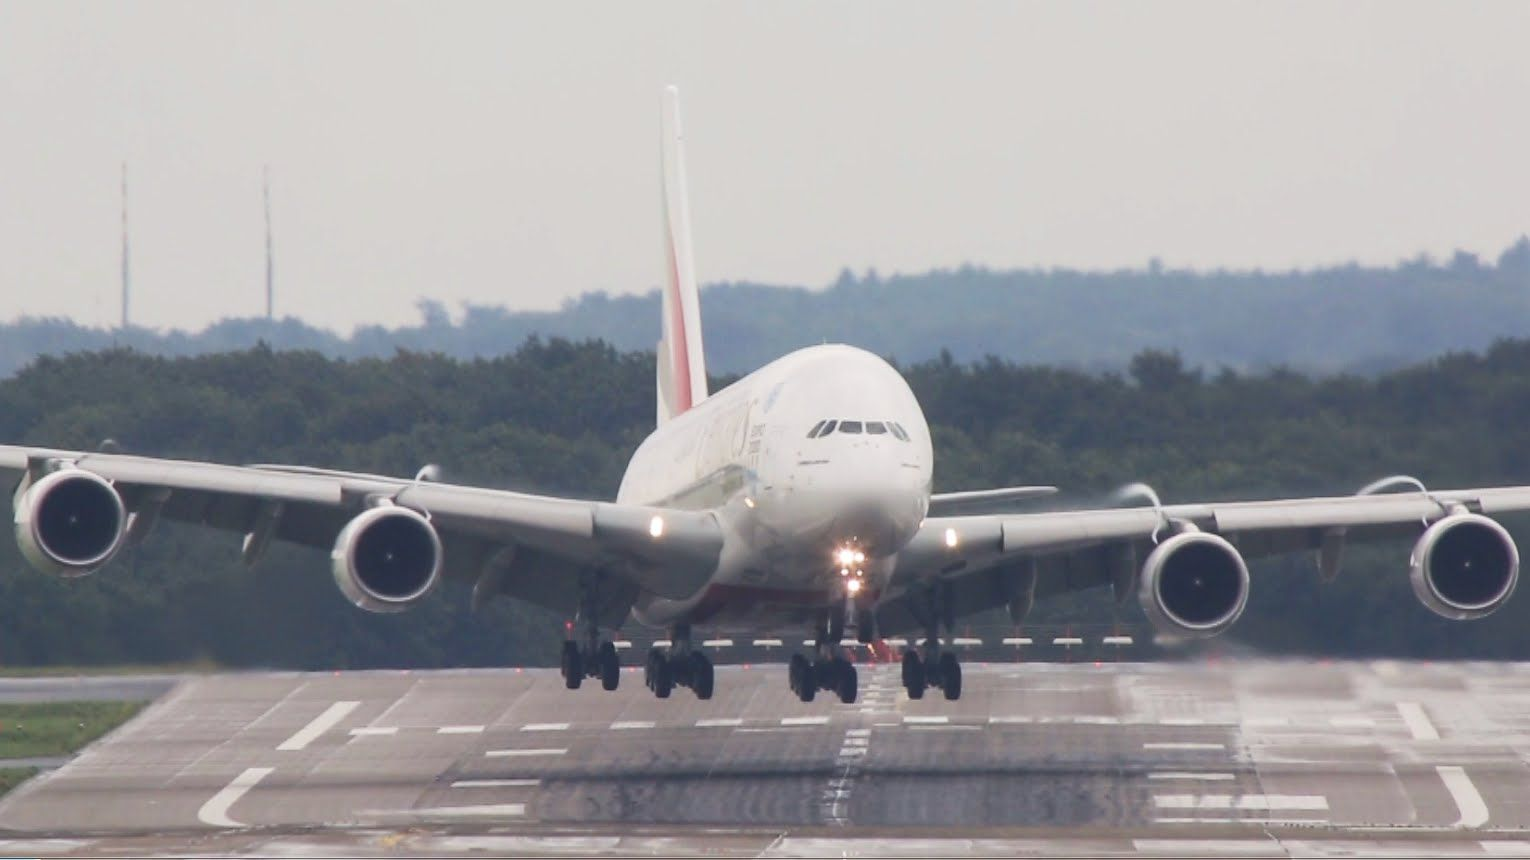 I have filmed lots of crosswind landings within the past